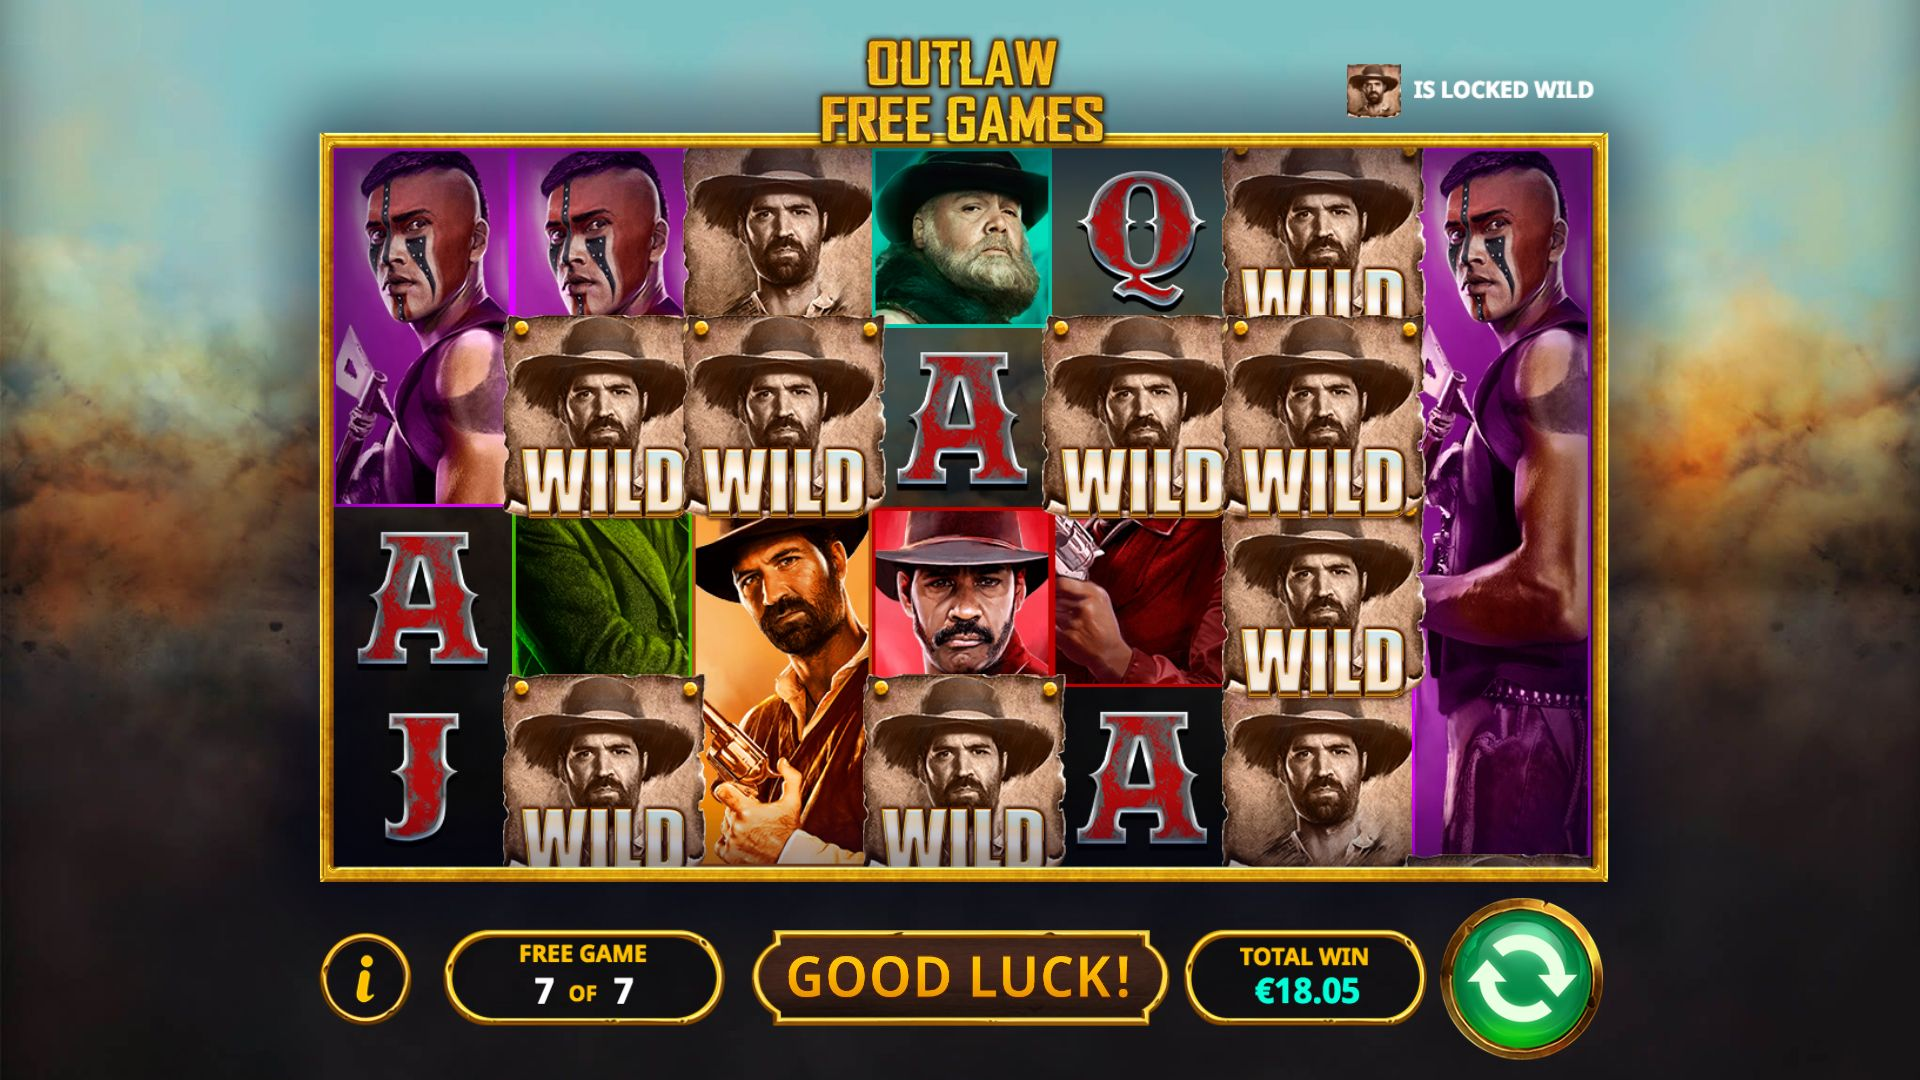 Outlaw Free Games